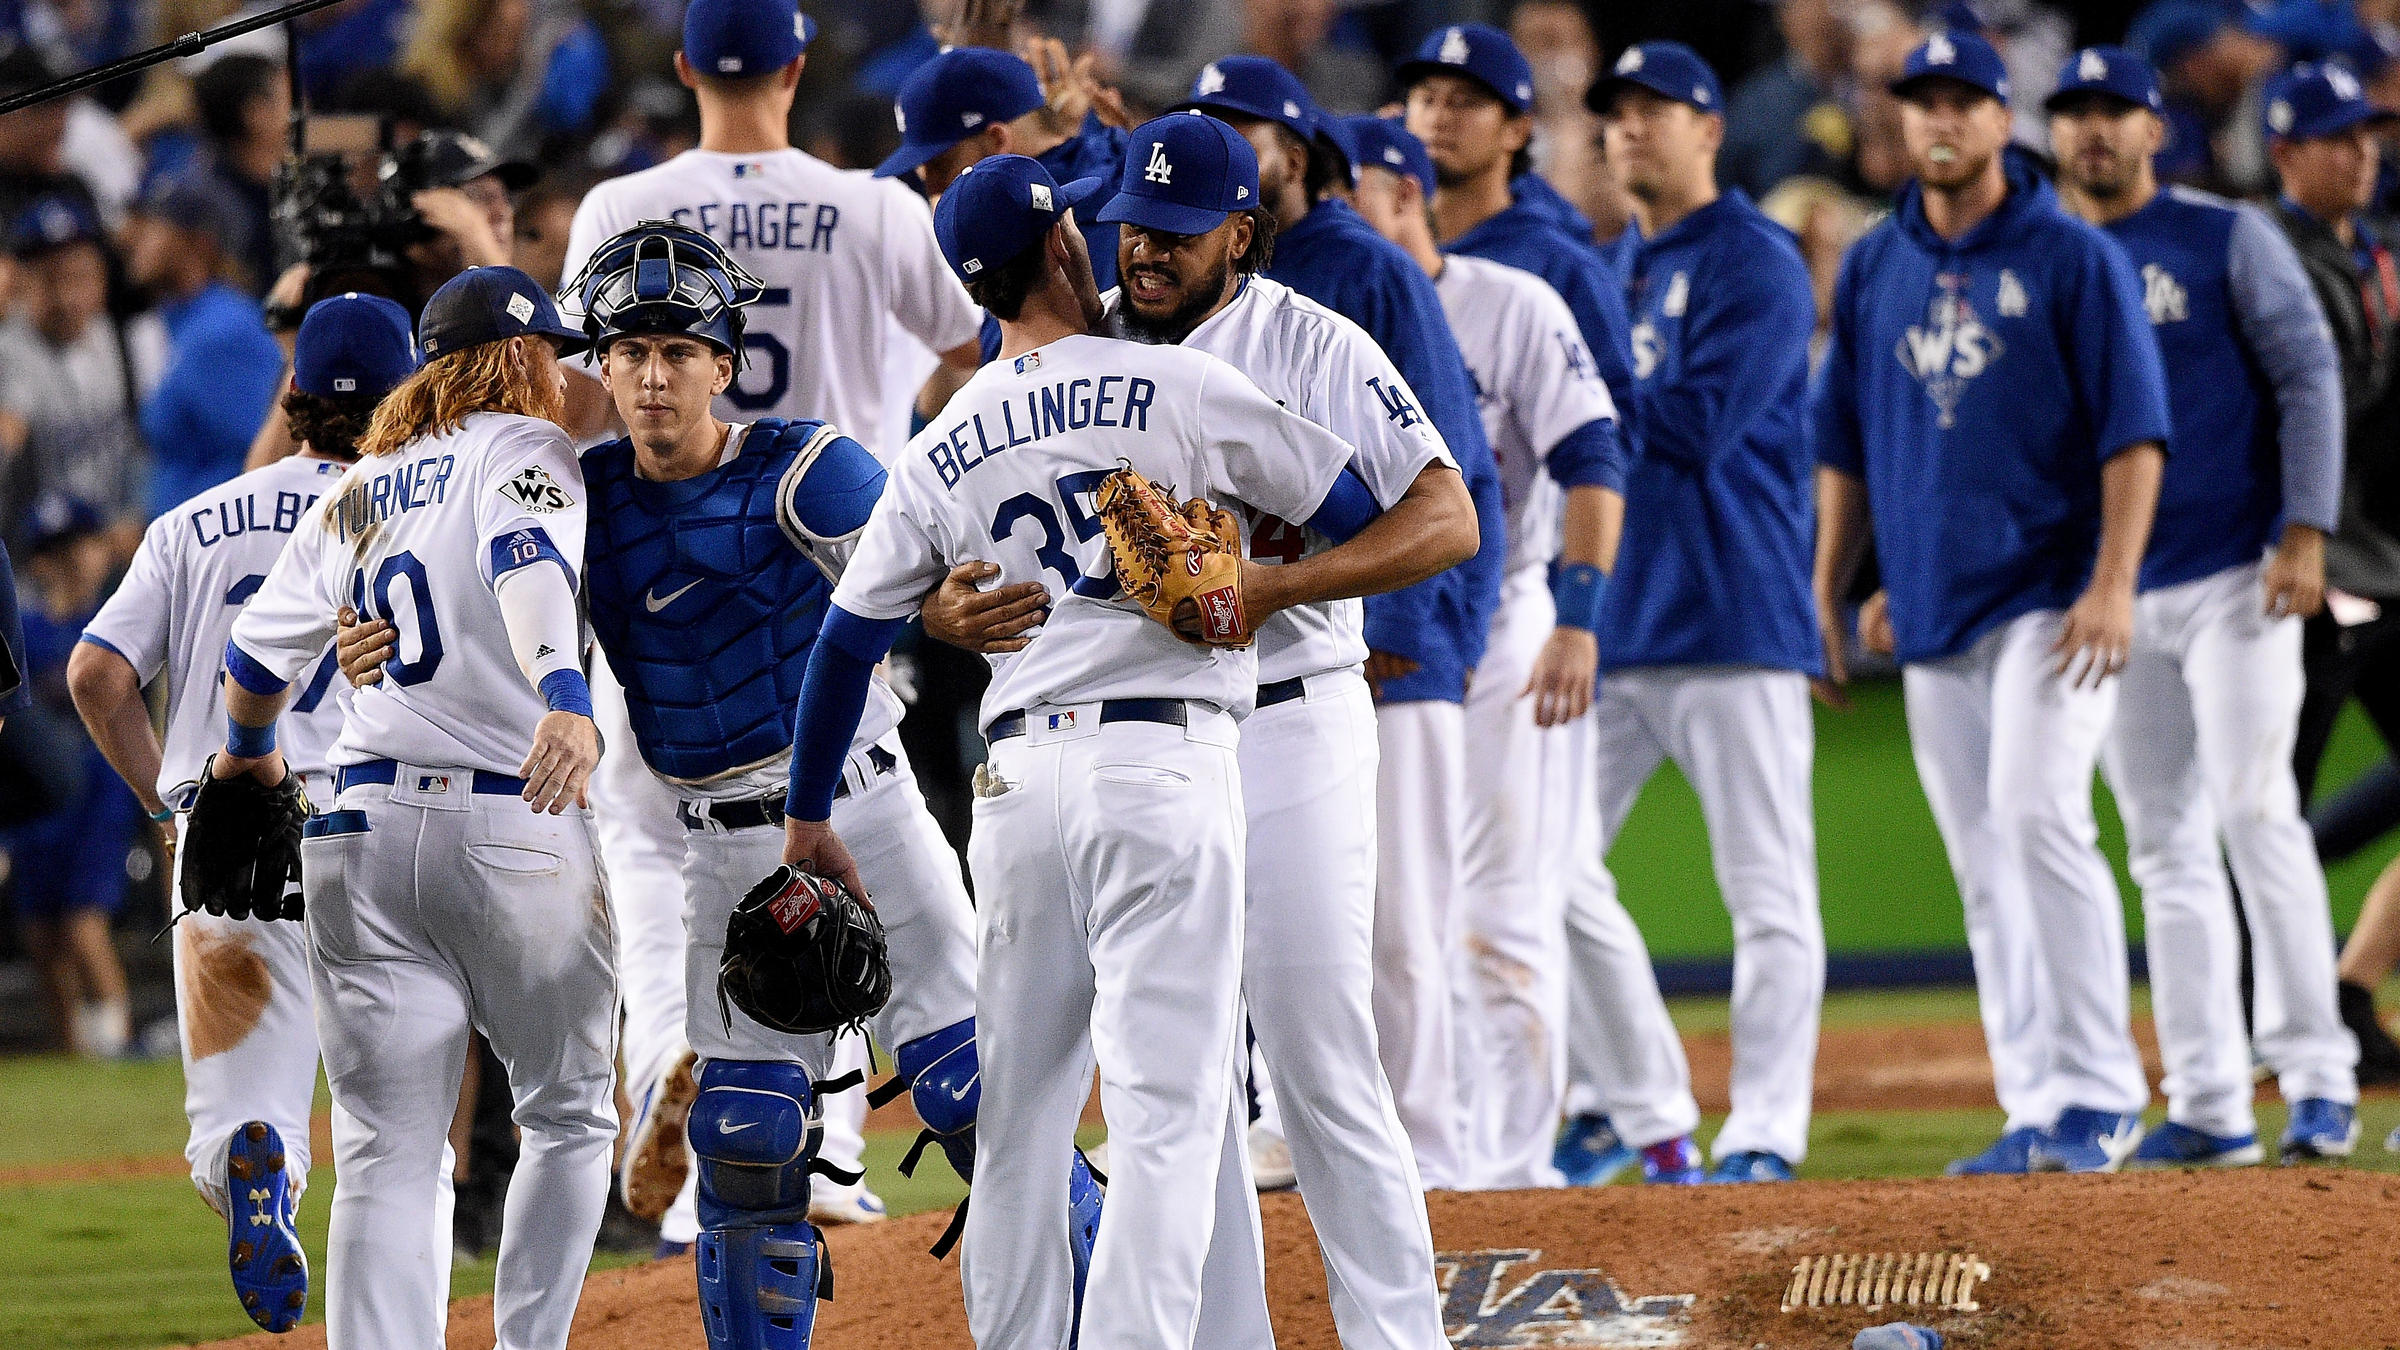 los angeles dodgers beat houston astros 3 1, extend world series tothe los angeles dodgers pour onto the field after beating the houston astros in game 6 of the world series